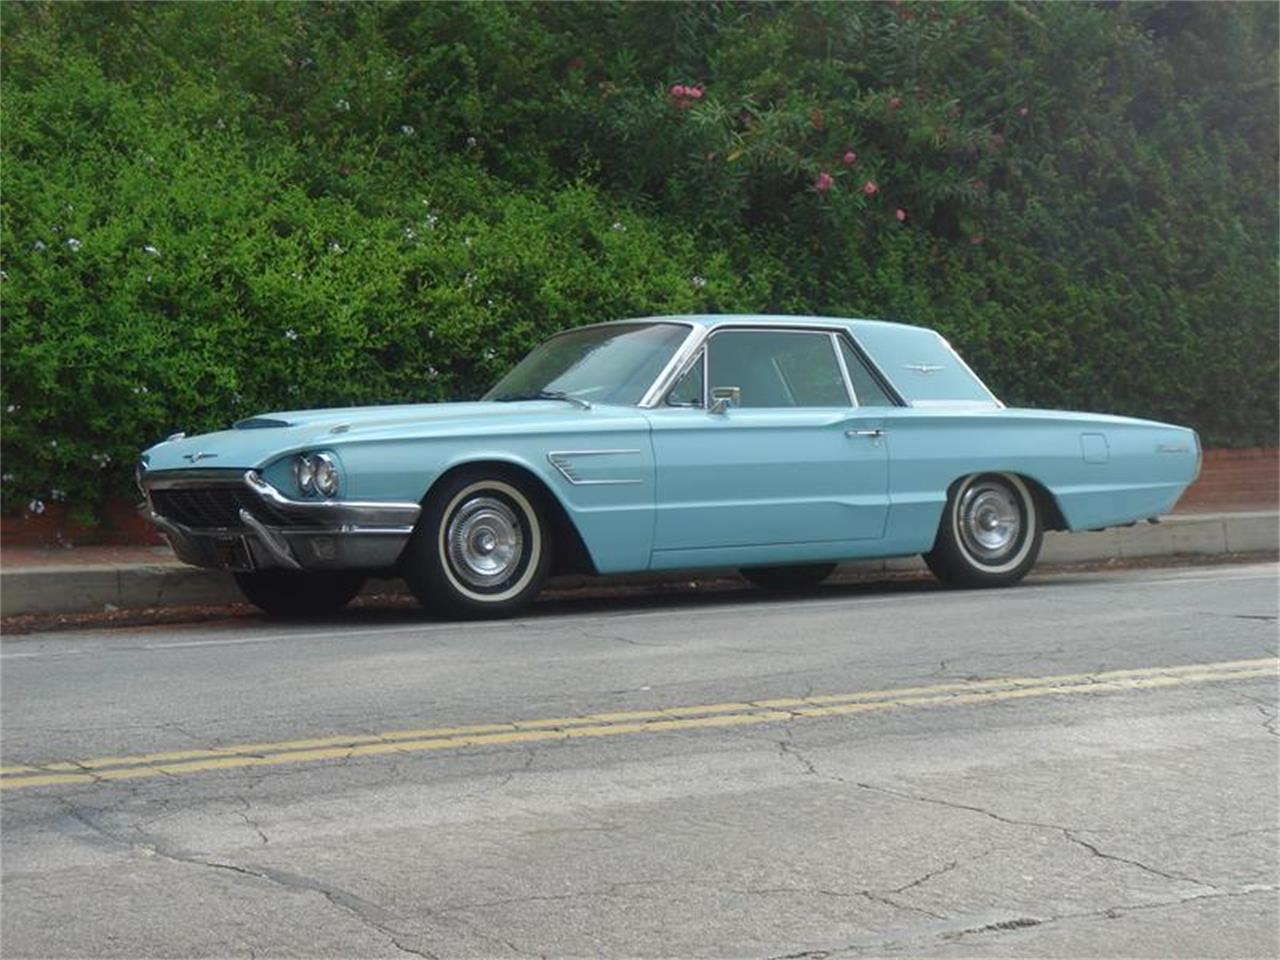 Large Picture of 1965 Thunderbird located in California Offered by Classic Car Guy - EJBT